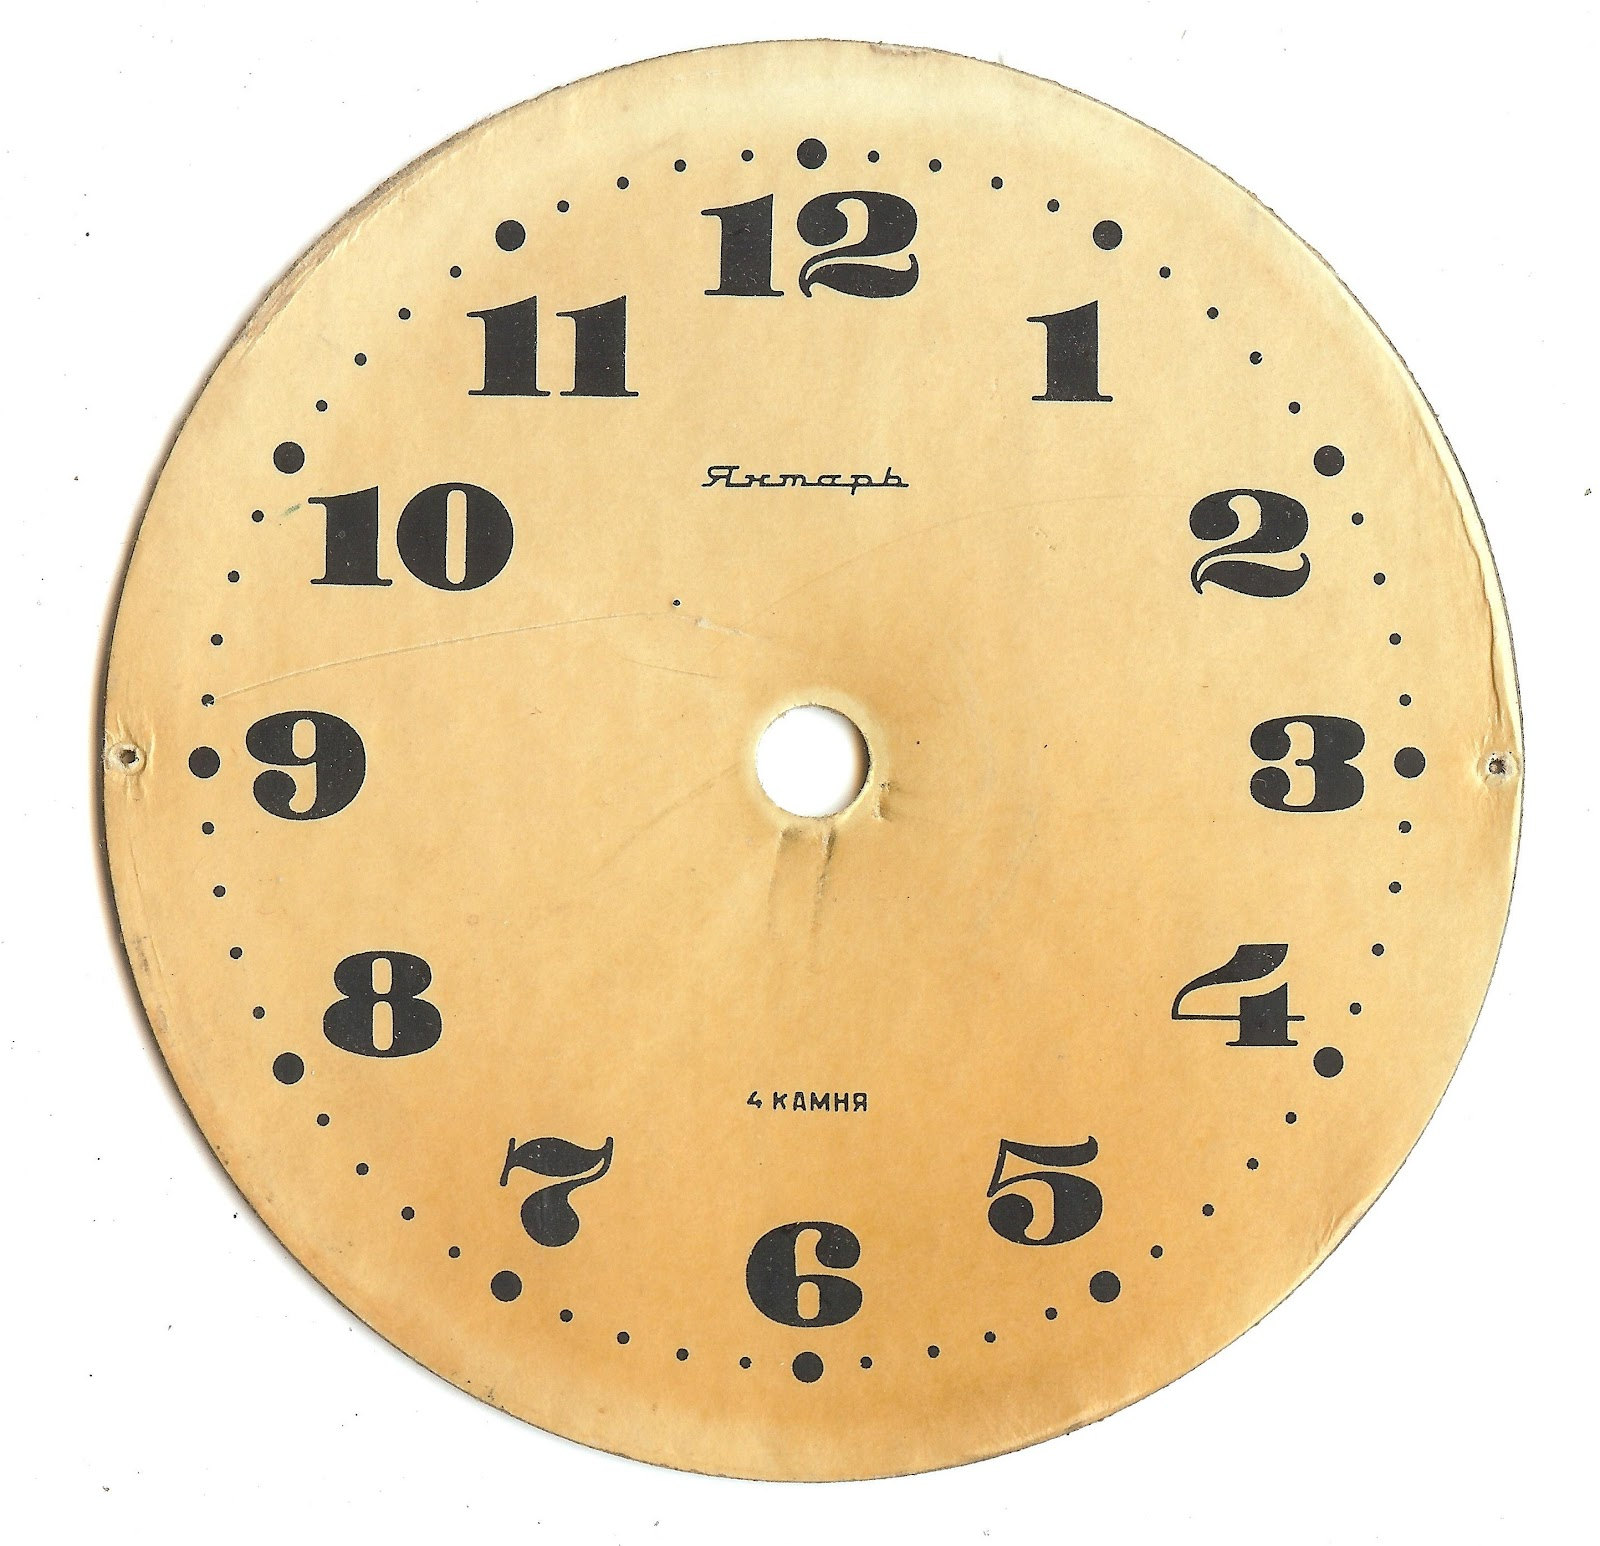 This is a picture of Witty Clock Face Images